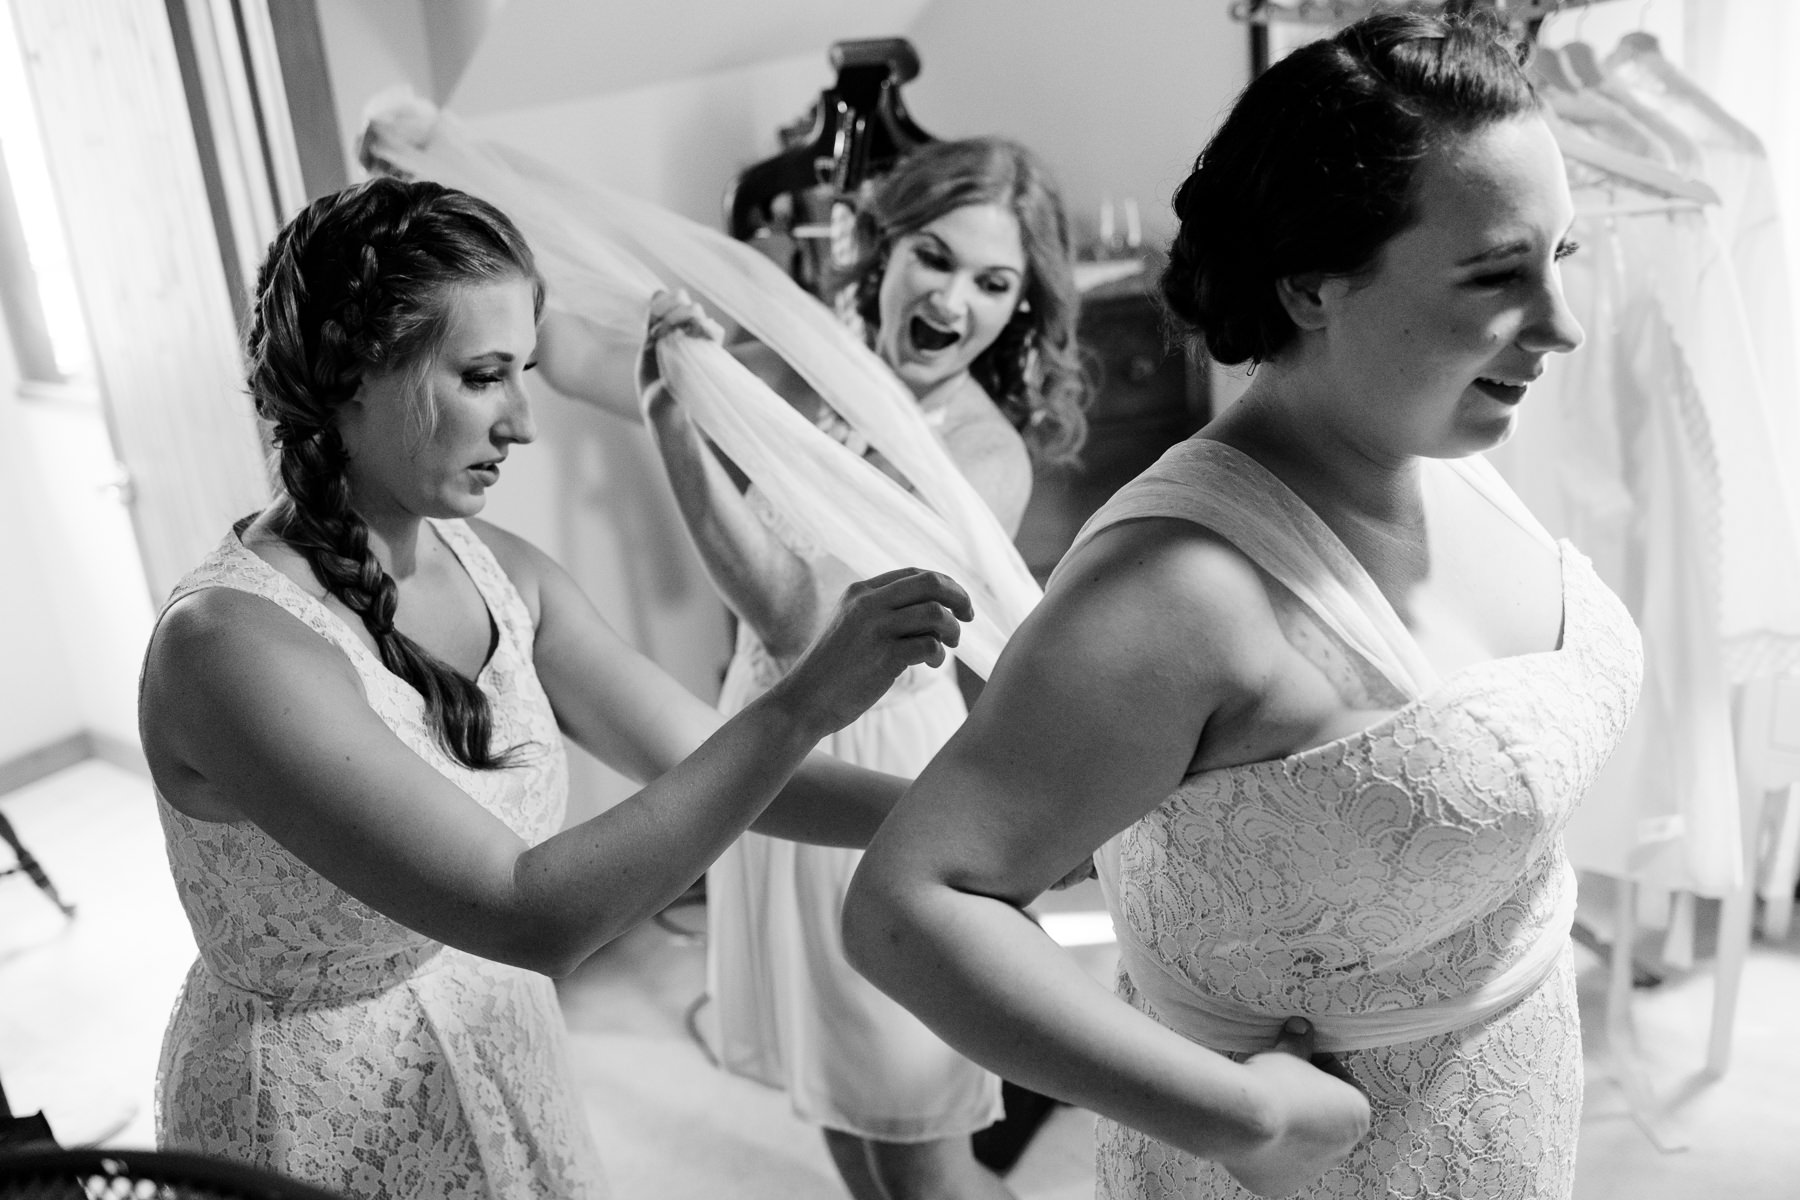 putting on wedding dress moment